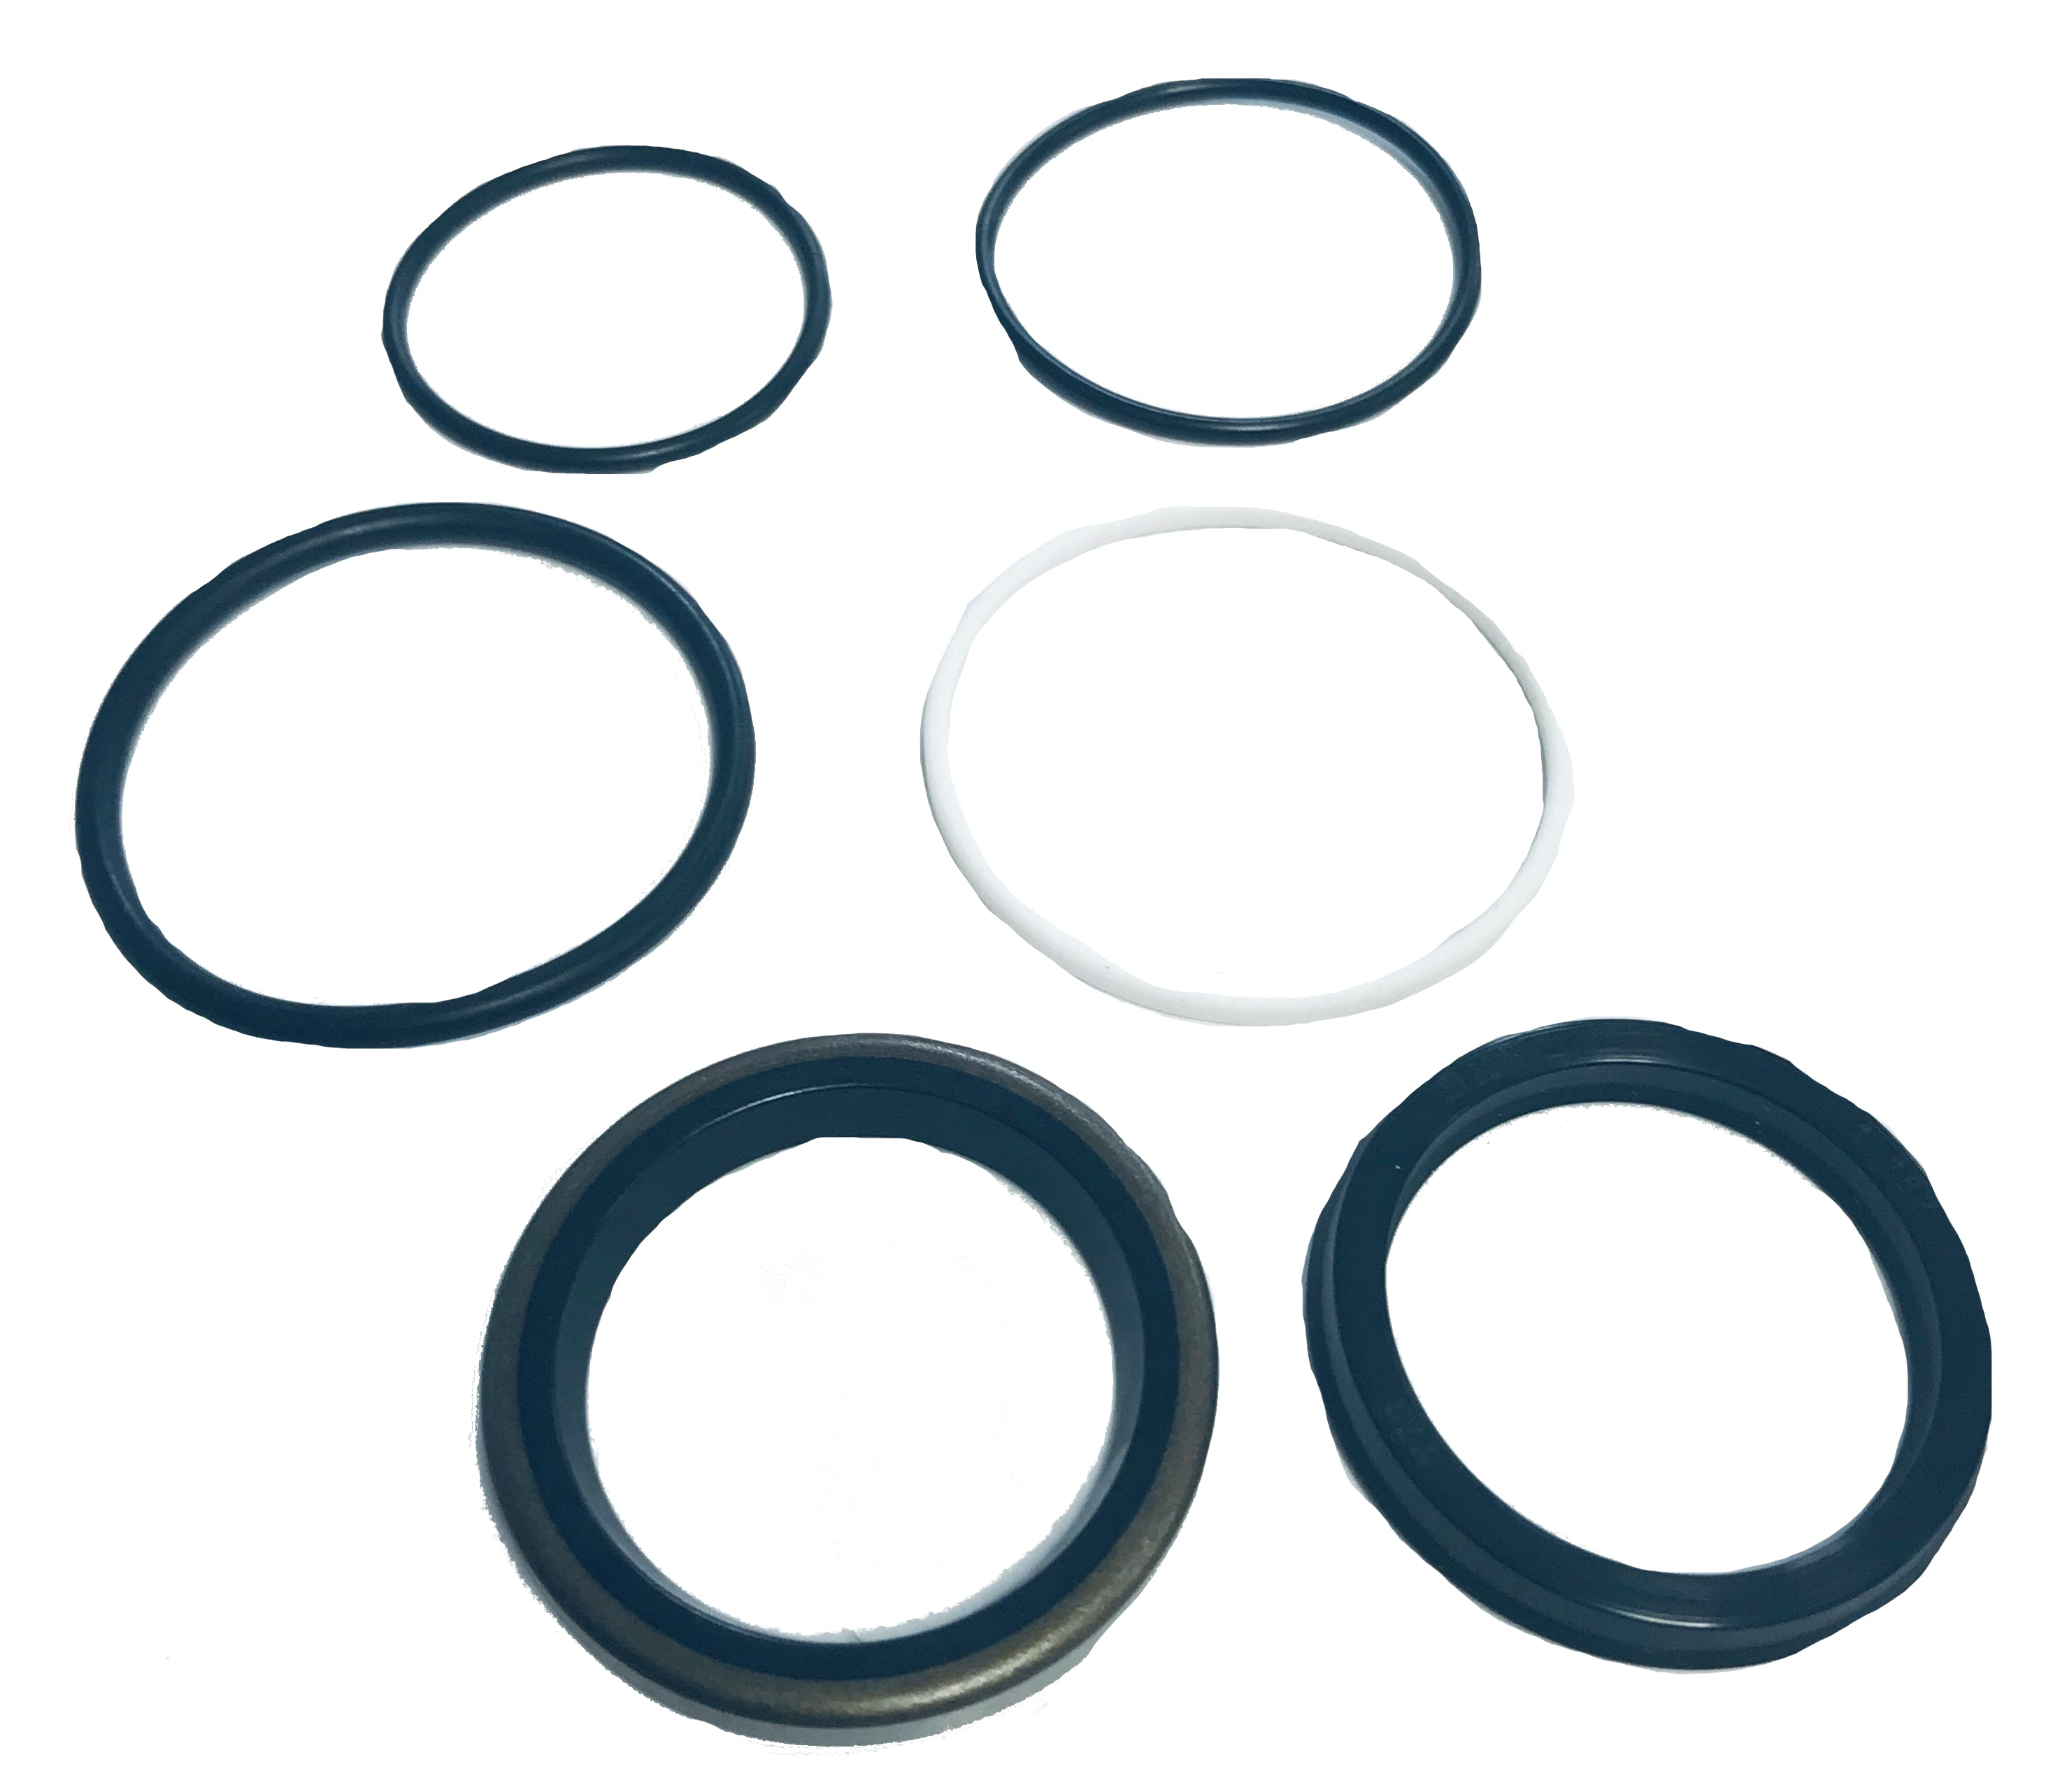 John Deere Original Equipment Seal Kit - AH109860